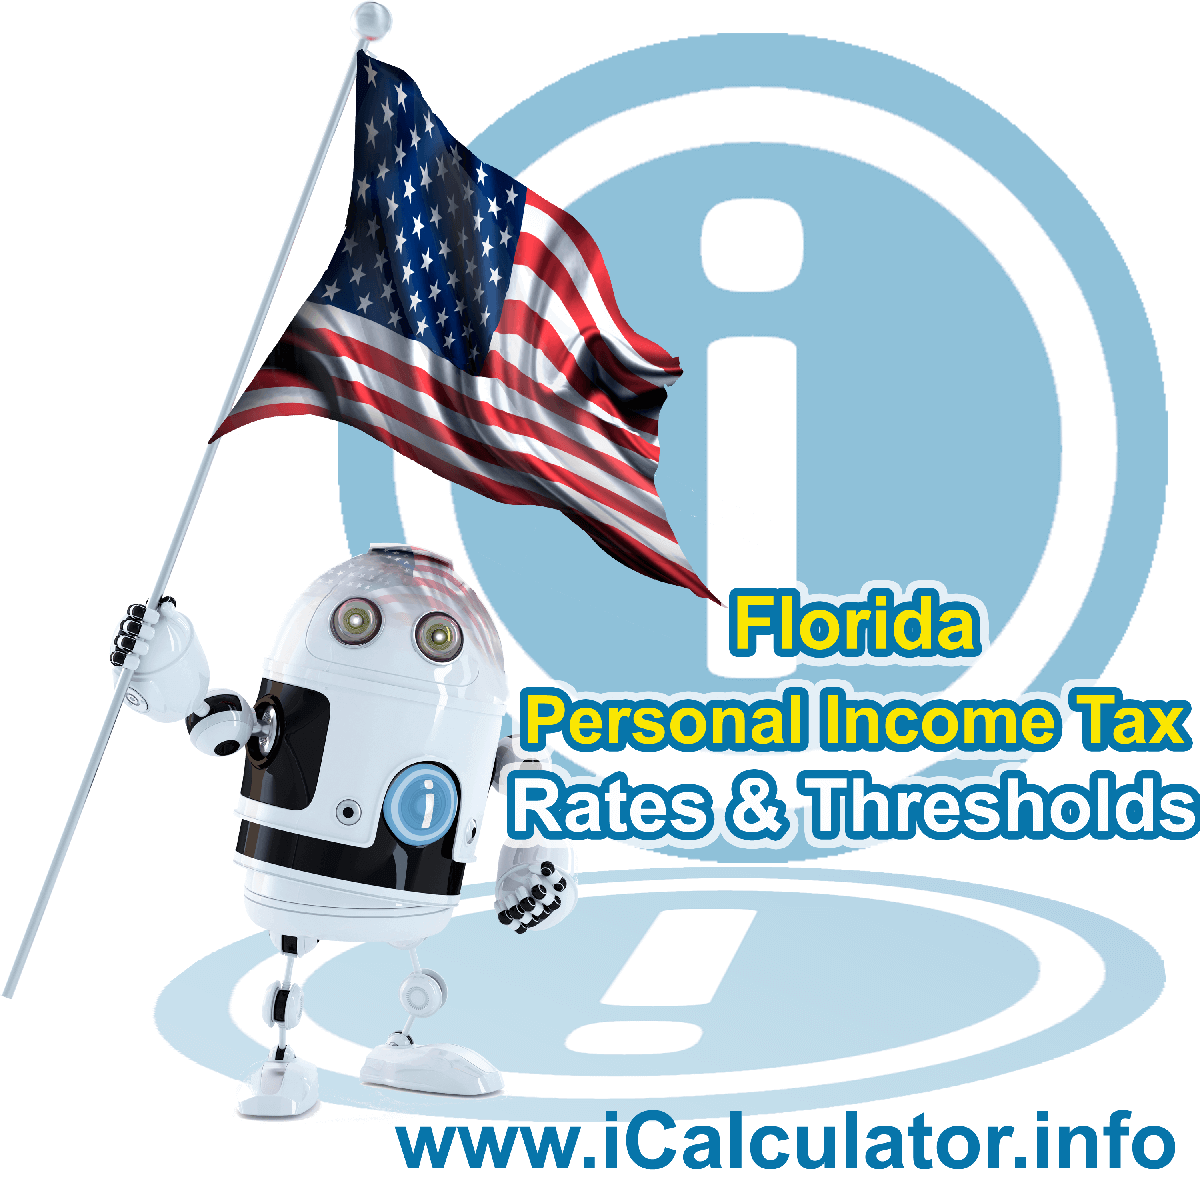 Florida State Tax Tables 2019. This image displays details of the Florida State Tax Tables for the 2019 tax return year which is provided in support of the 2019 US Tax Calculator